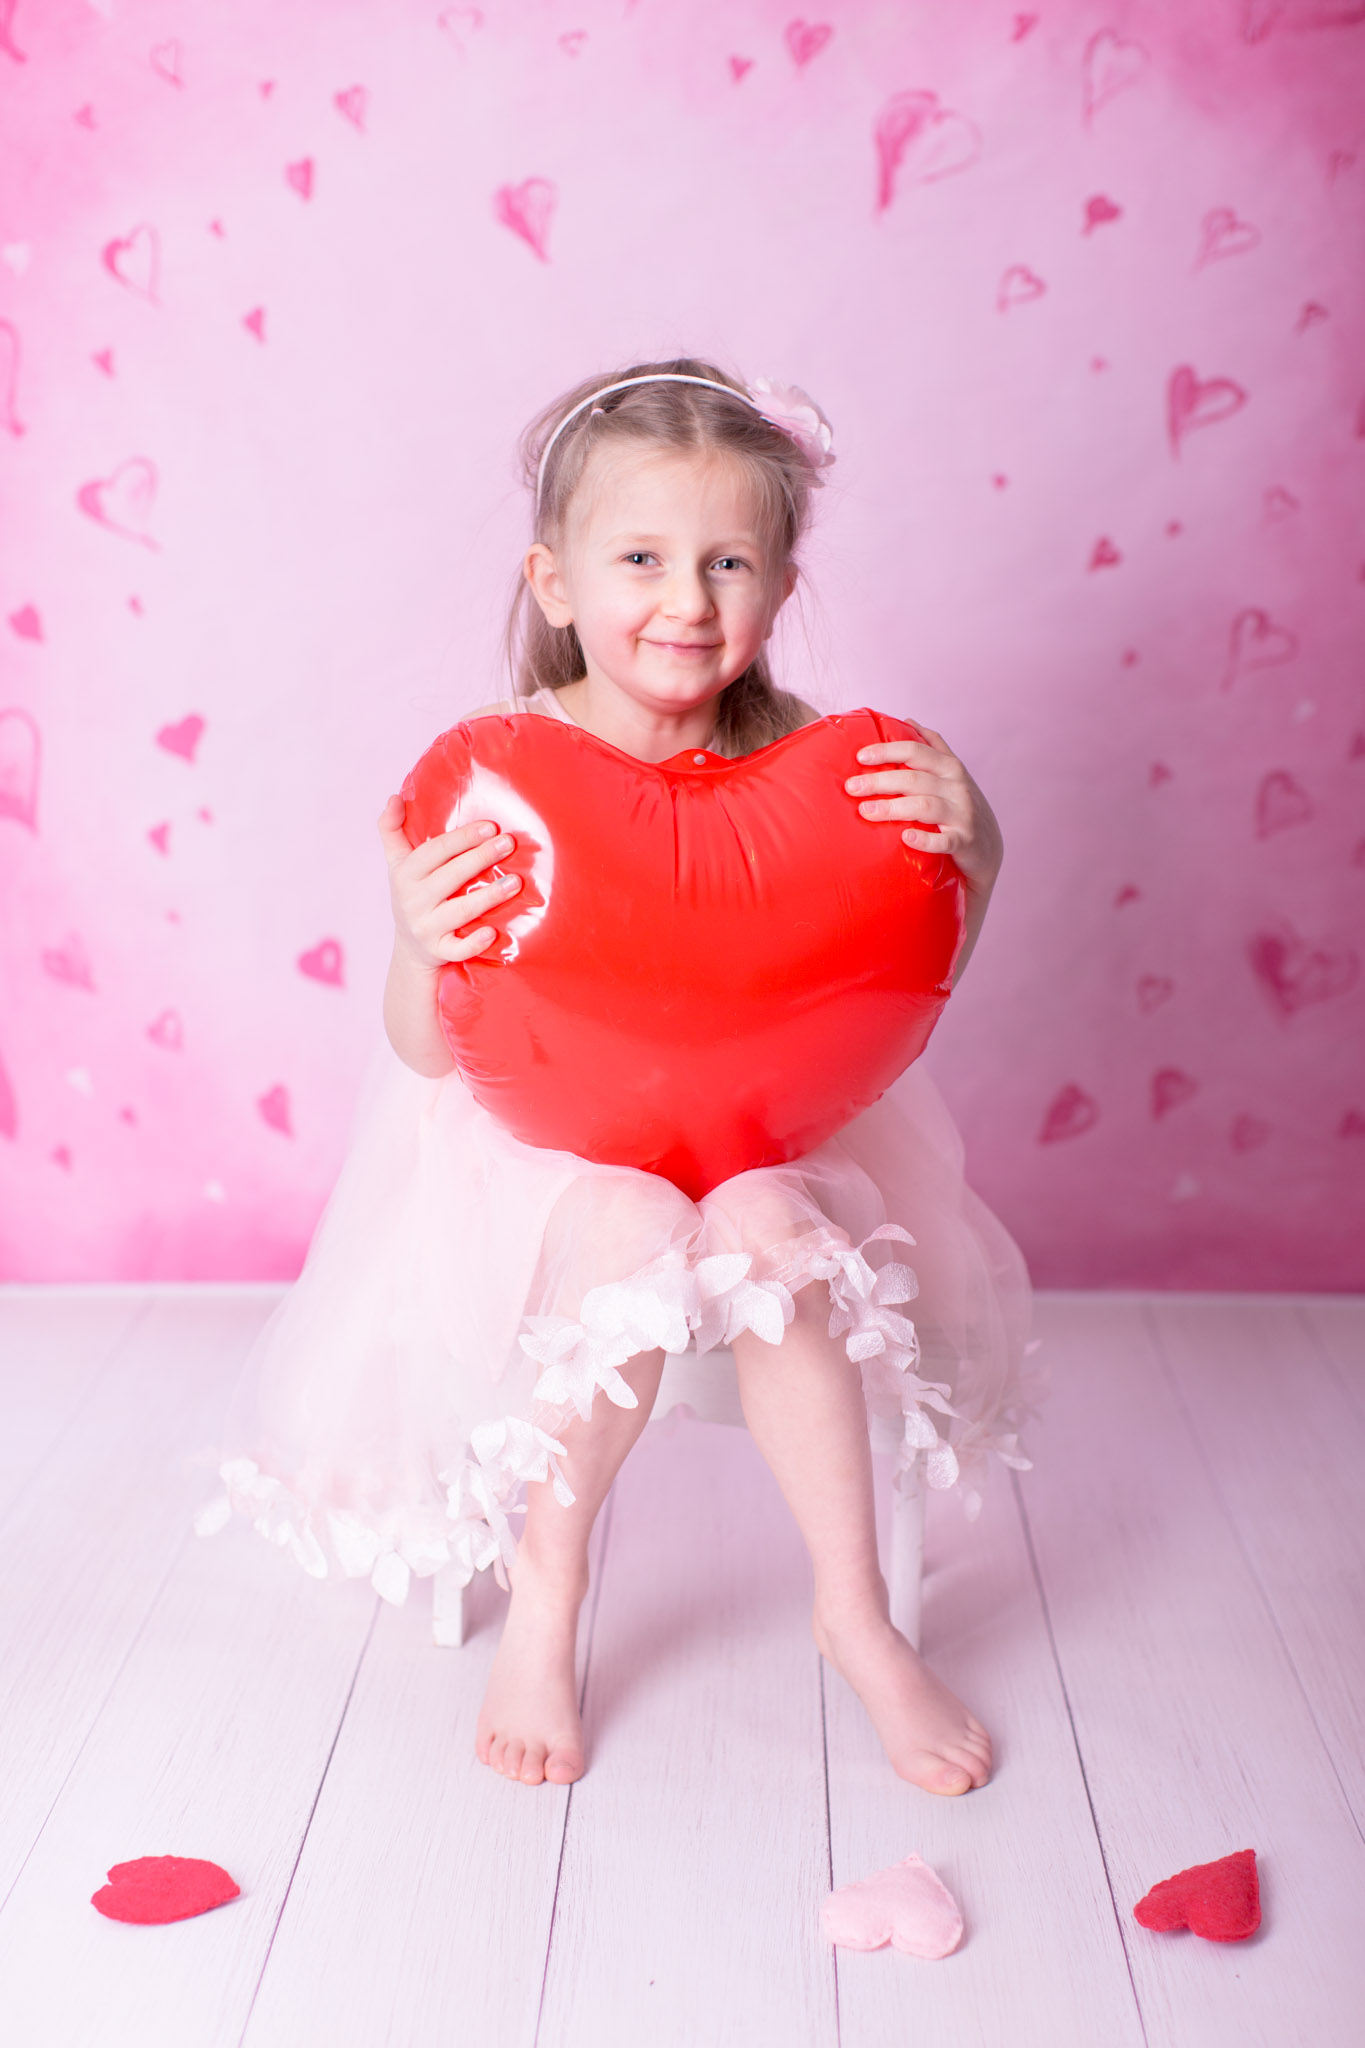 Image of the girl holding balloon heart